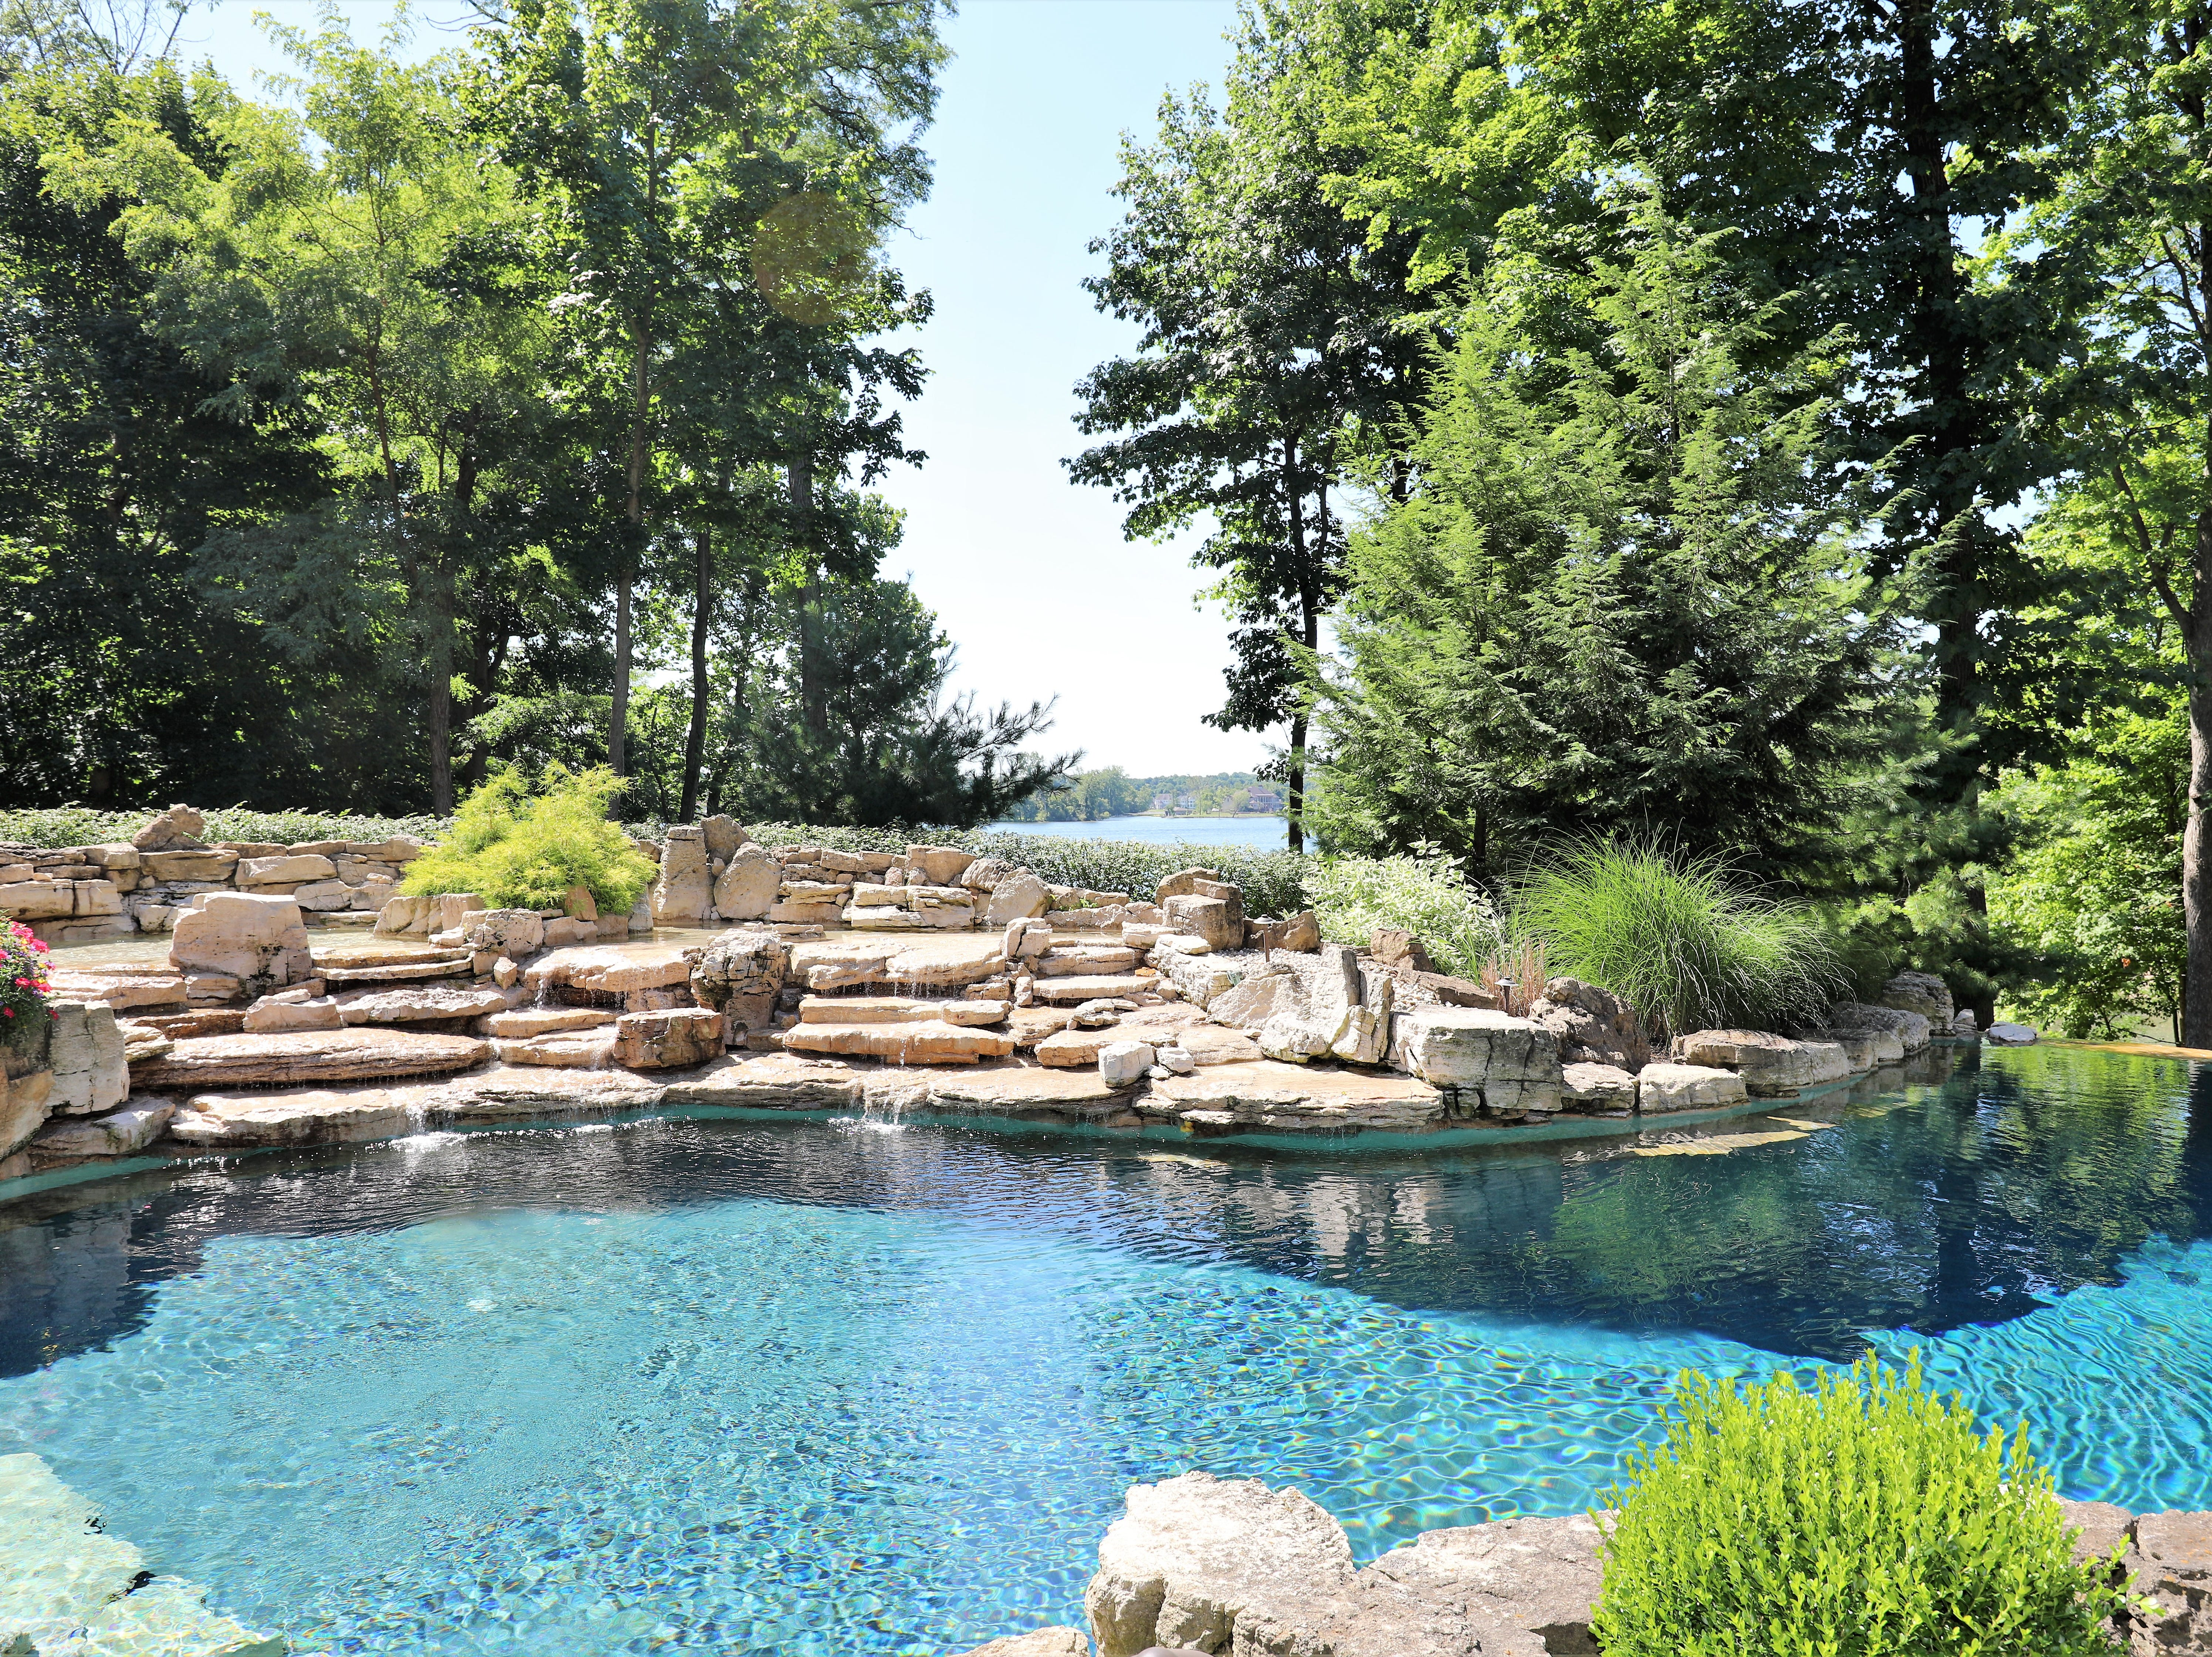 In the backyard is a pool with a rock waterfall feature that rolls down the property's slight hill towards its private reservoir access.